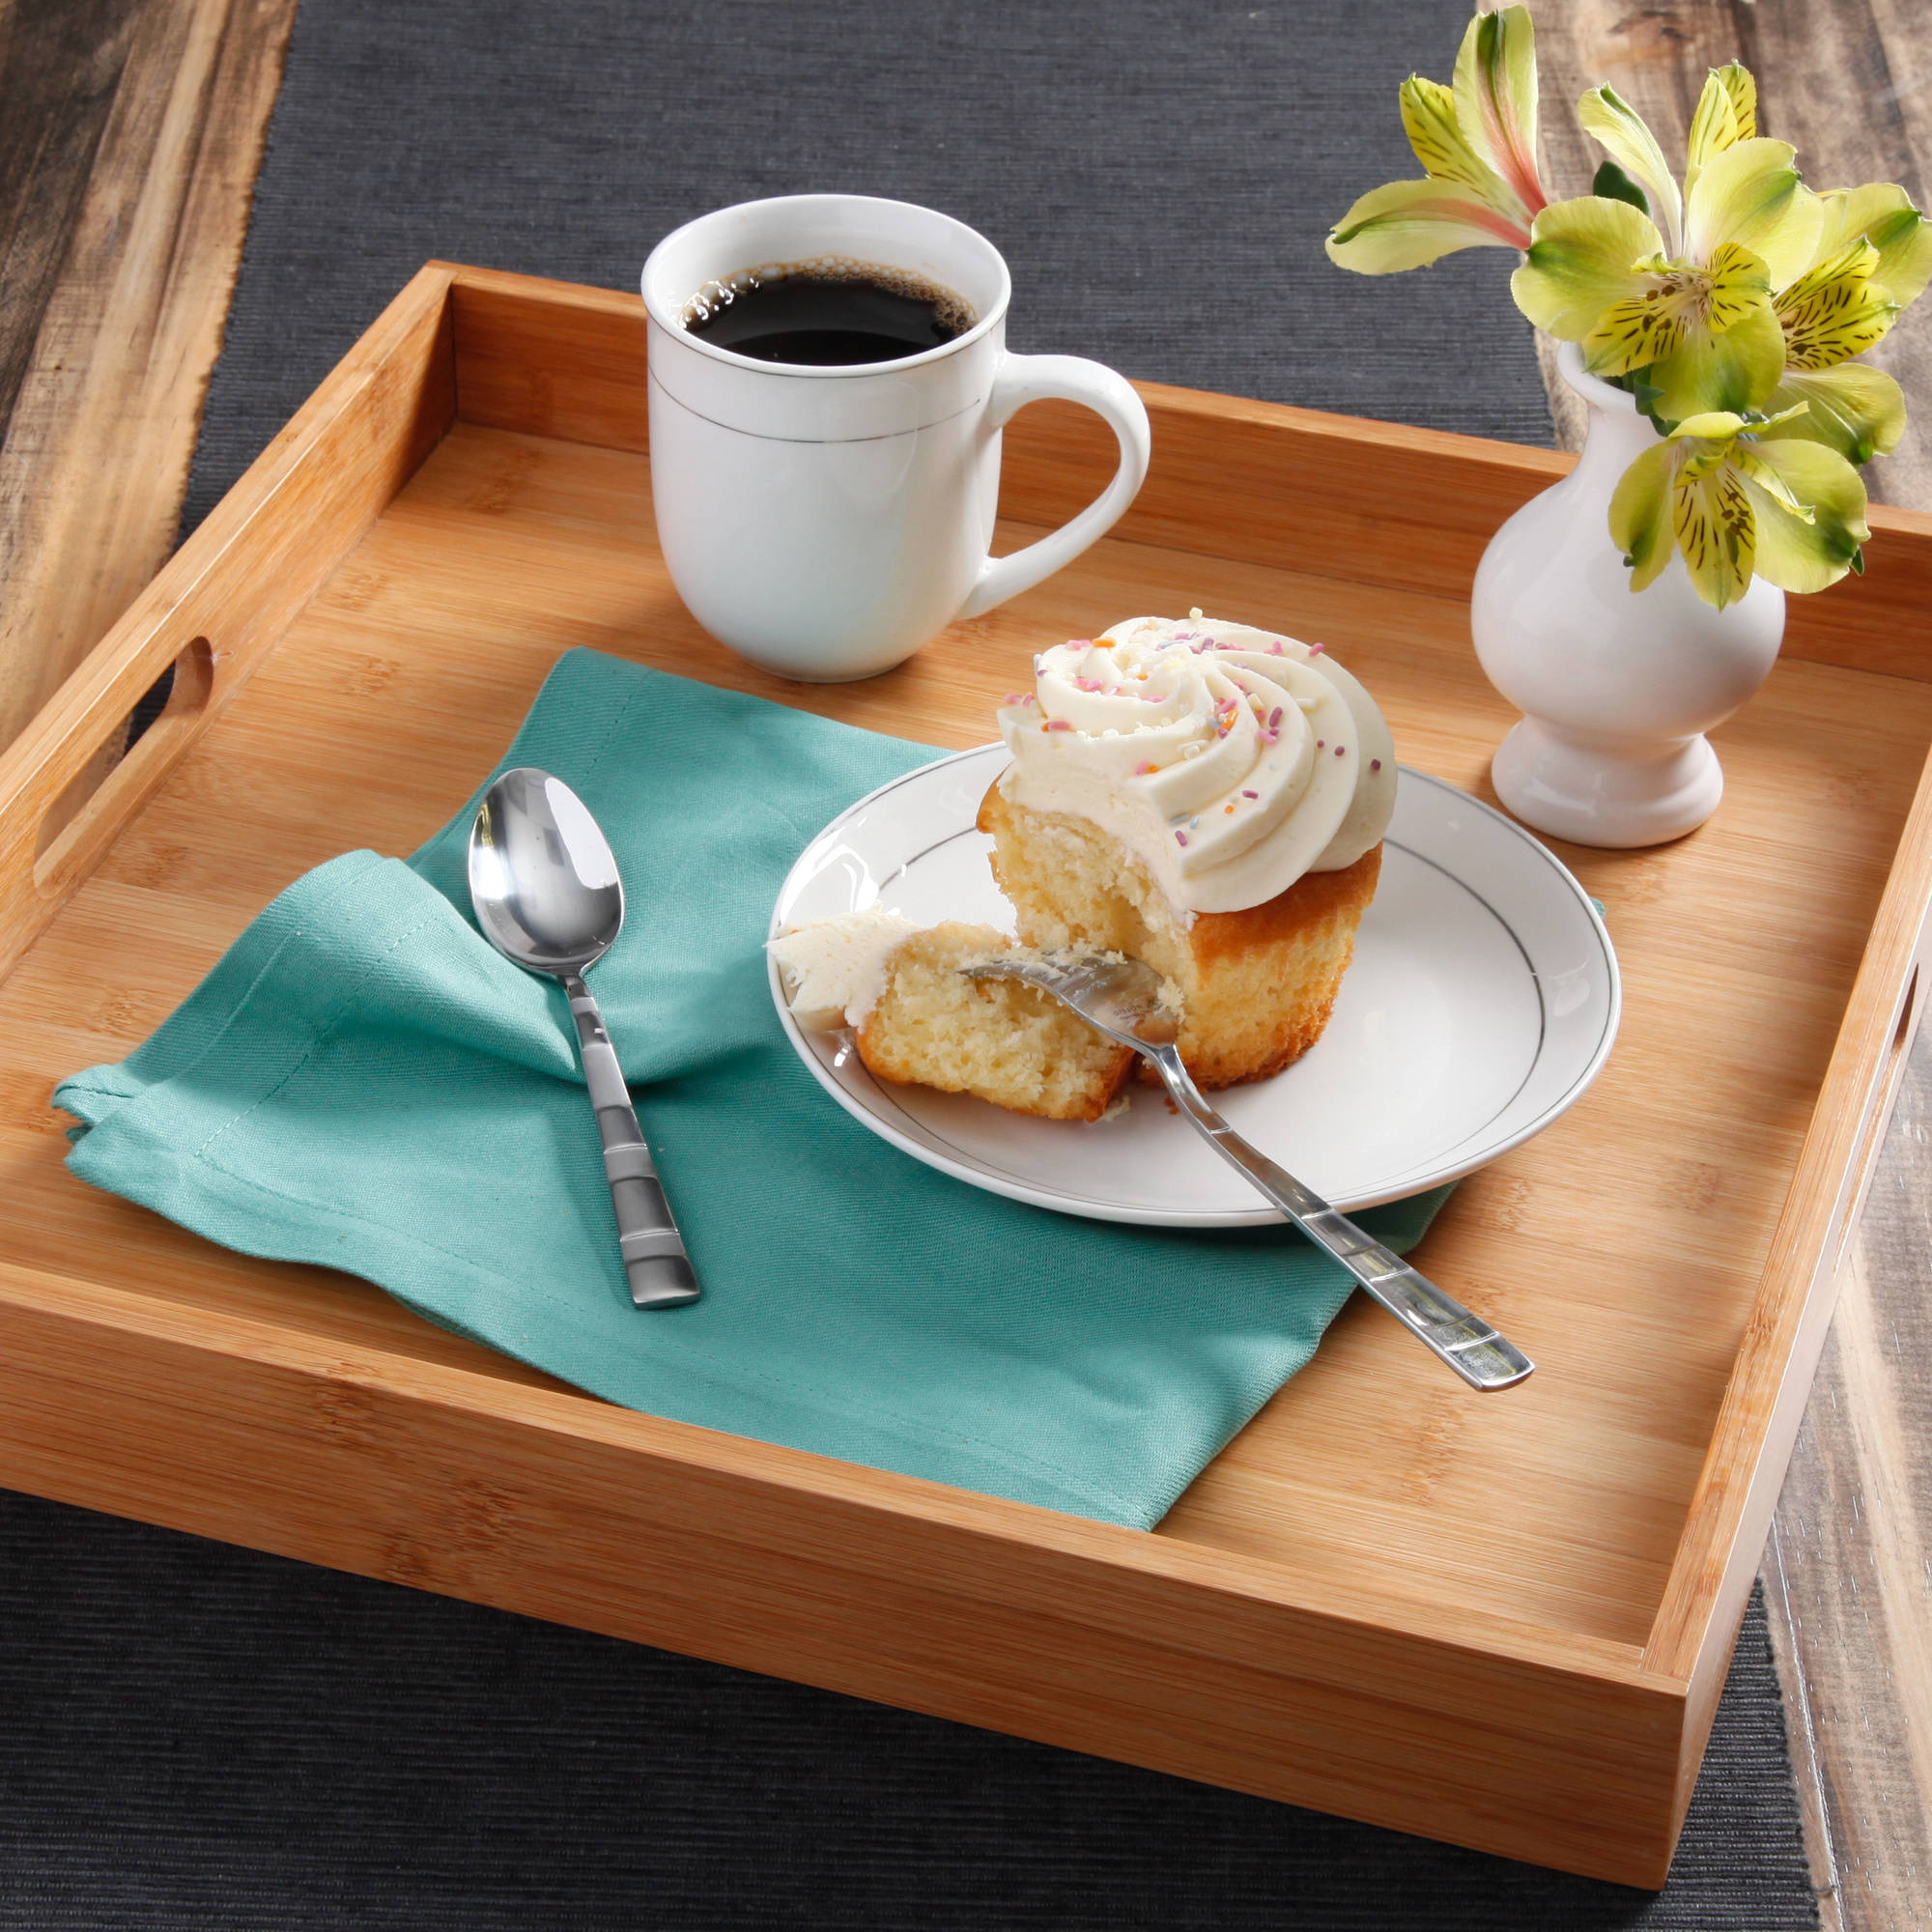 Better Homes and Gardens Laminated Bamboo Serving Tray, Natural Bamboo